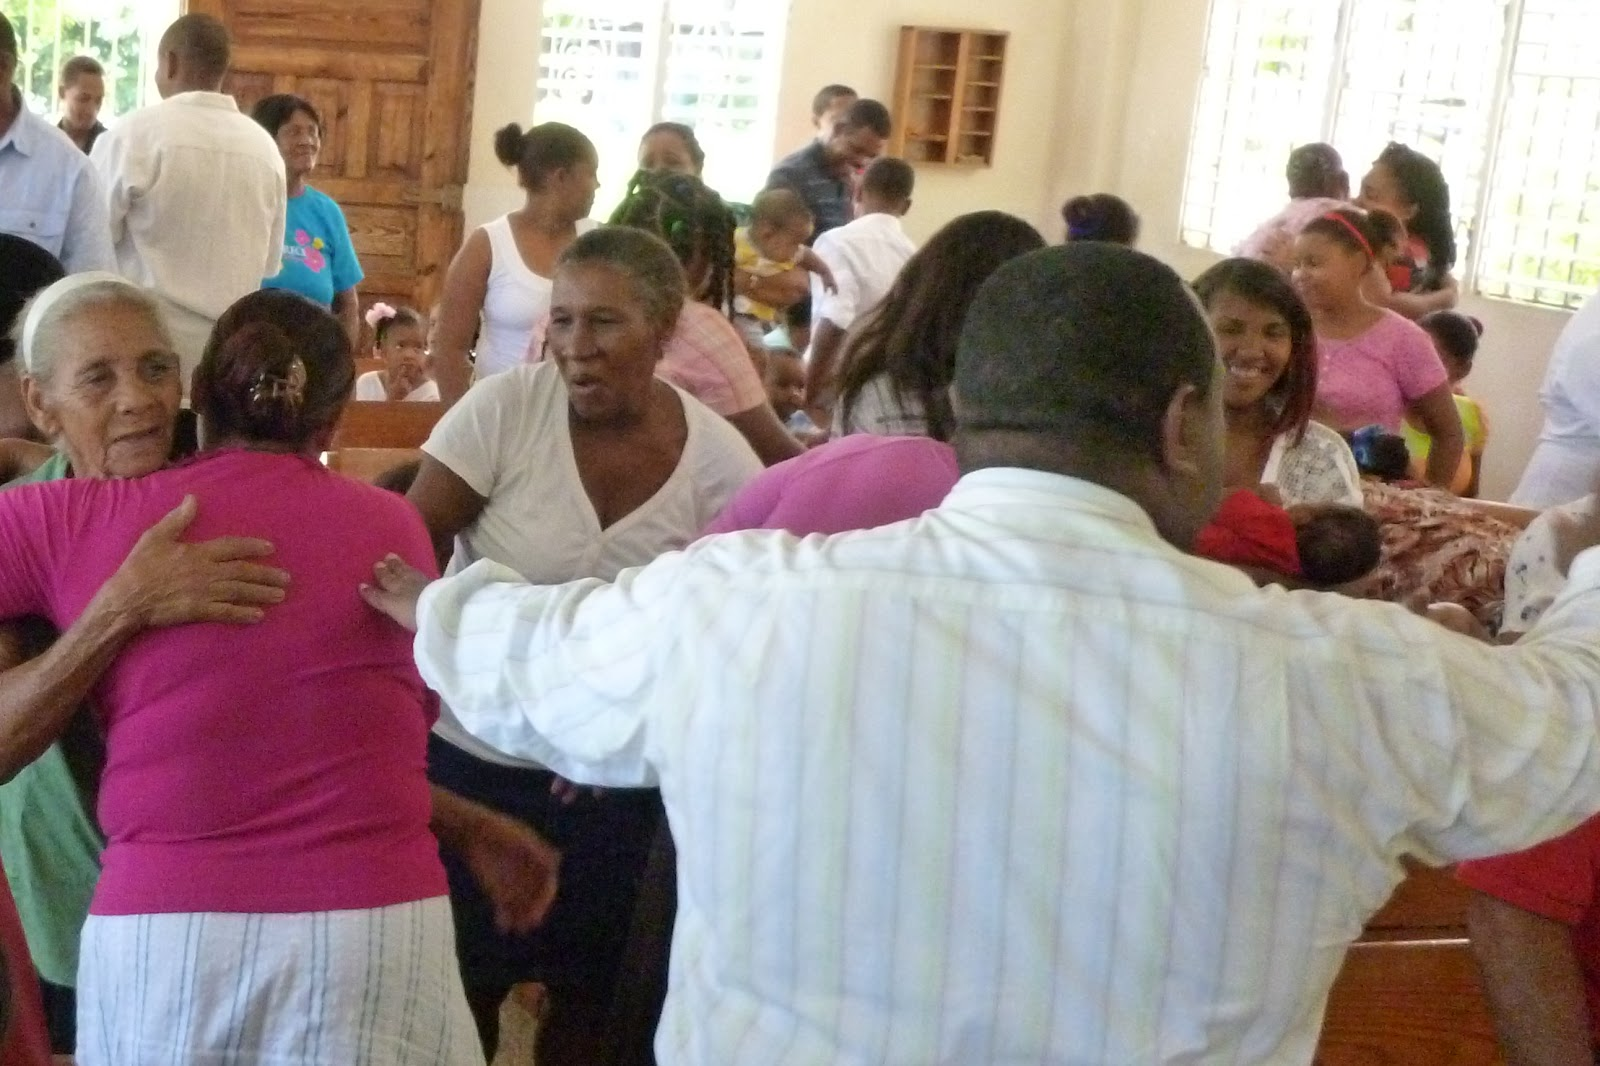 Mark and jenny mpppcusa life in barahona dominican republic reverend samuel daz ledesma front right inviting the congregation of cassandra ied church in the alpha neighborhood of barahona to greet each other m4hsunfo